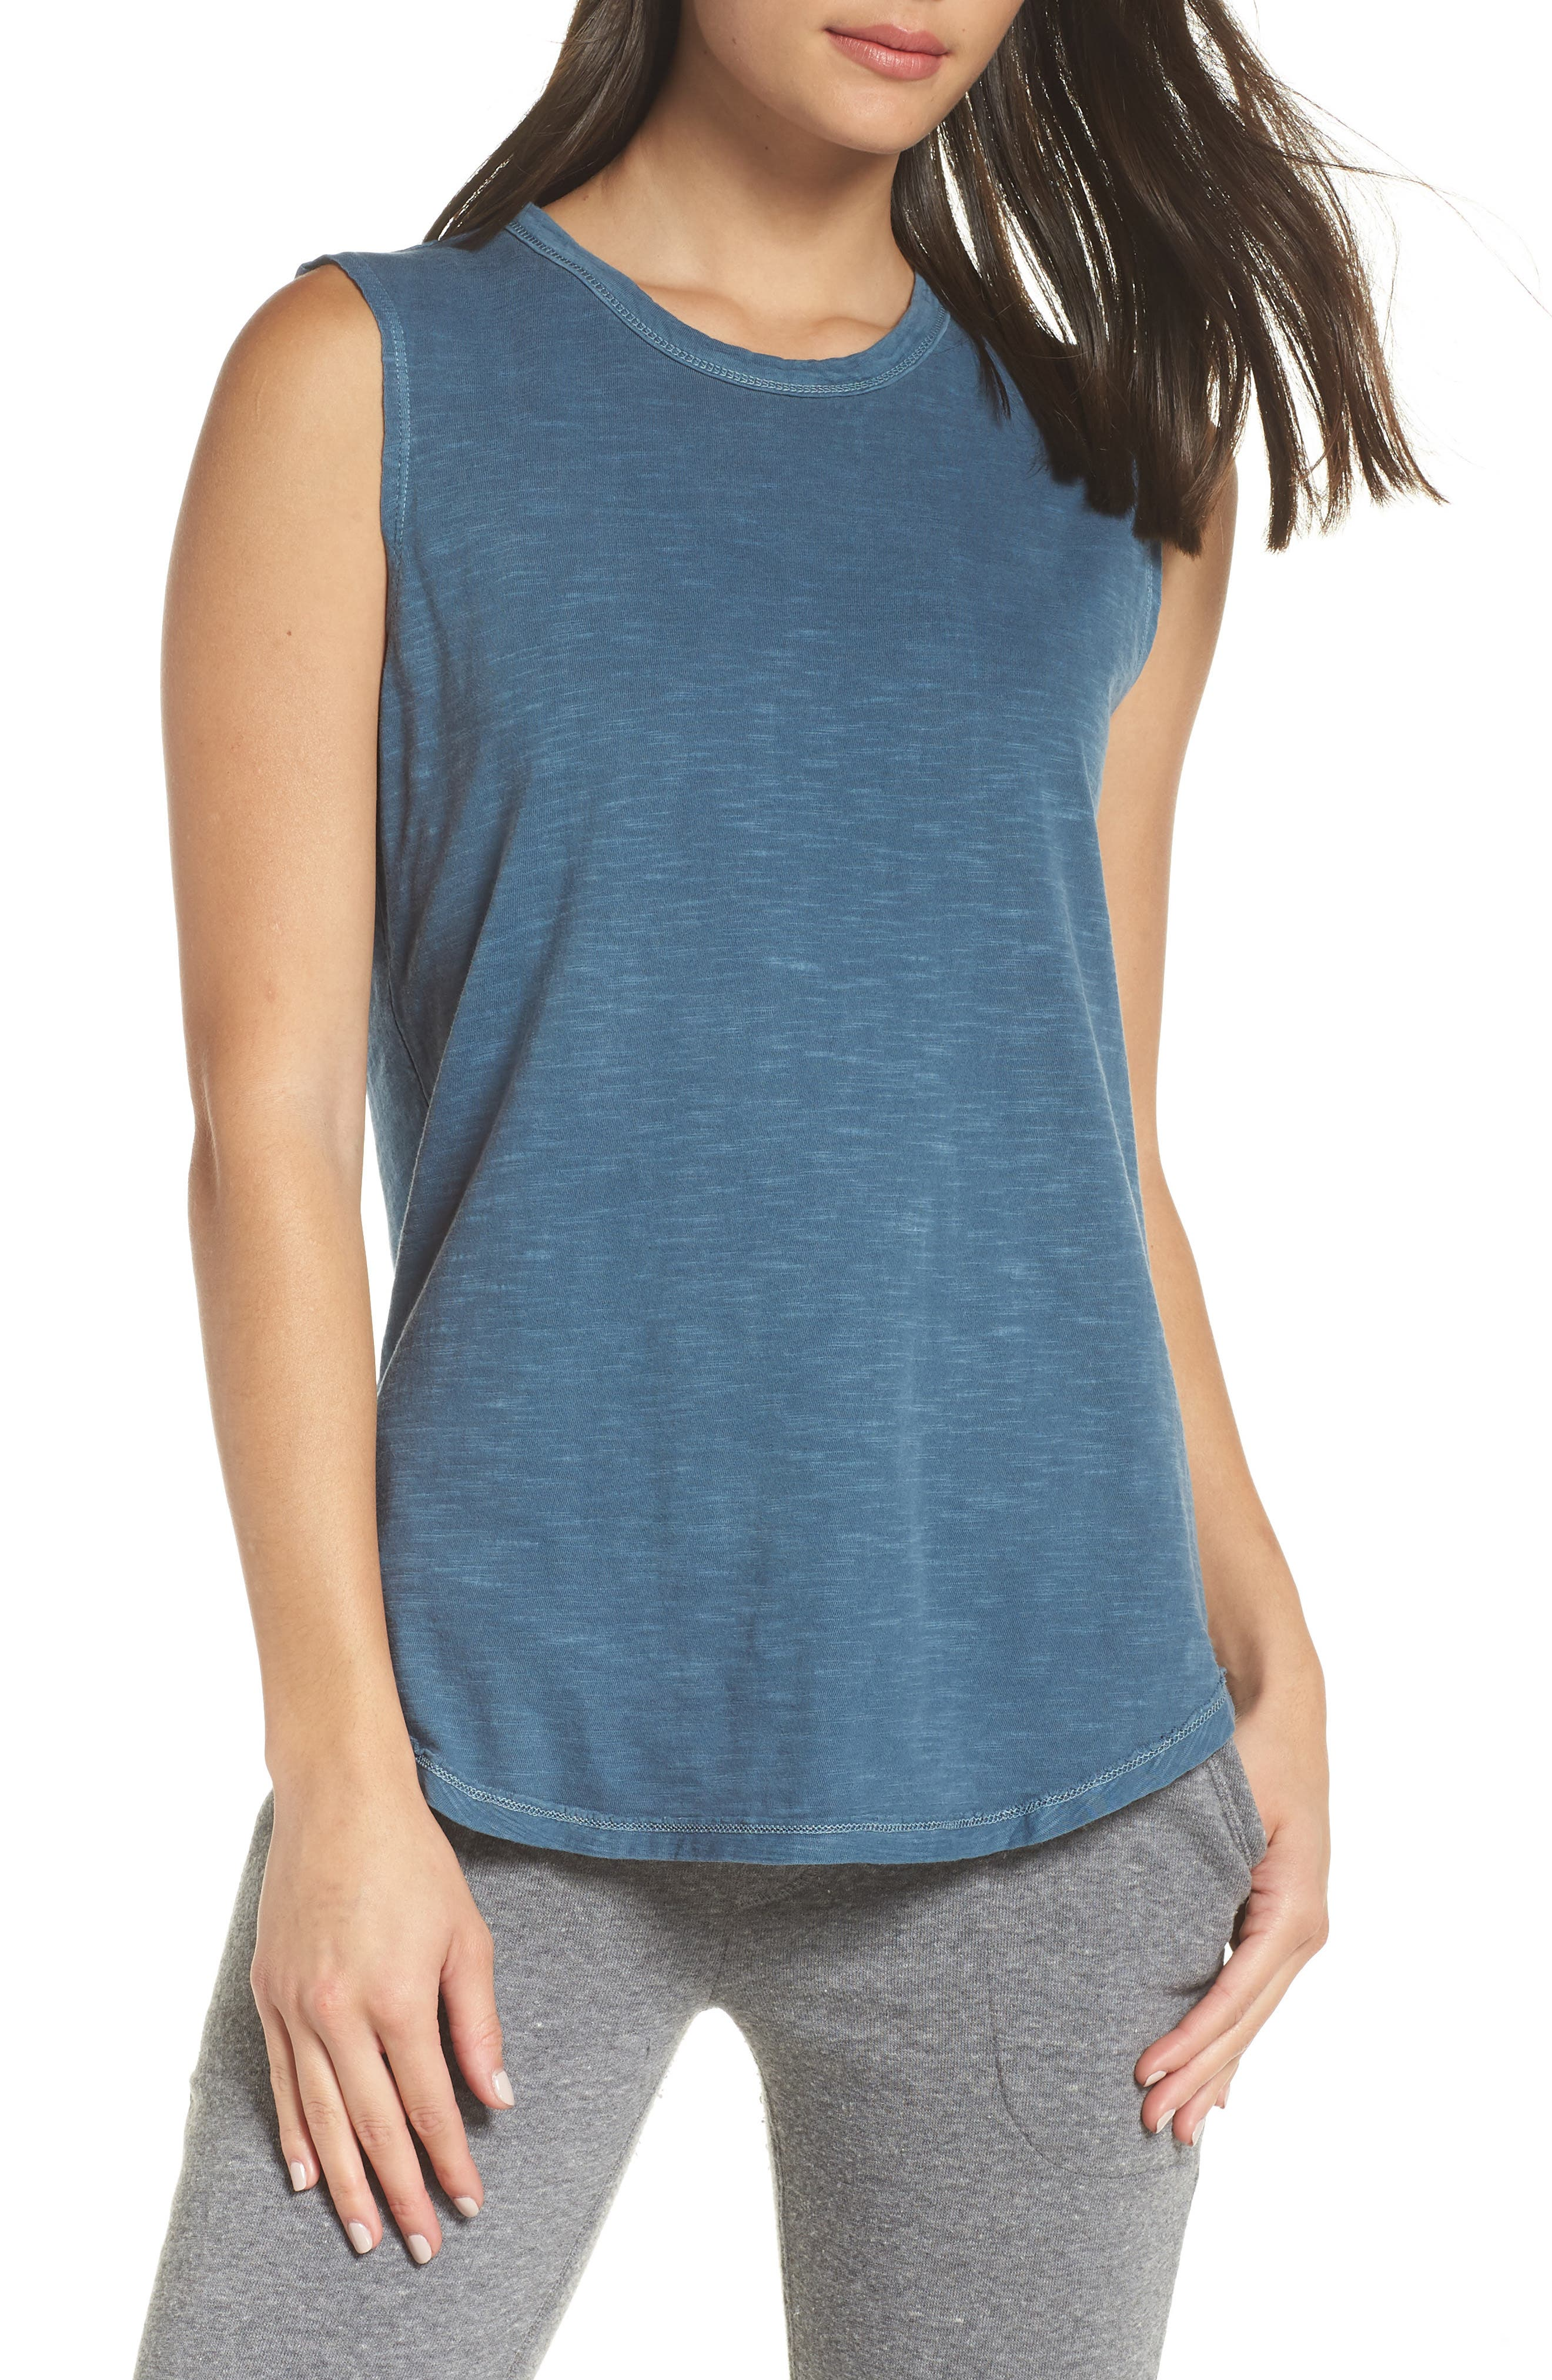 Inside Out Muscle Tee,                             Main thumbnail 1, color,                             MINERAL BLUE PIGMENT